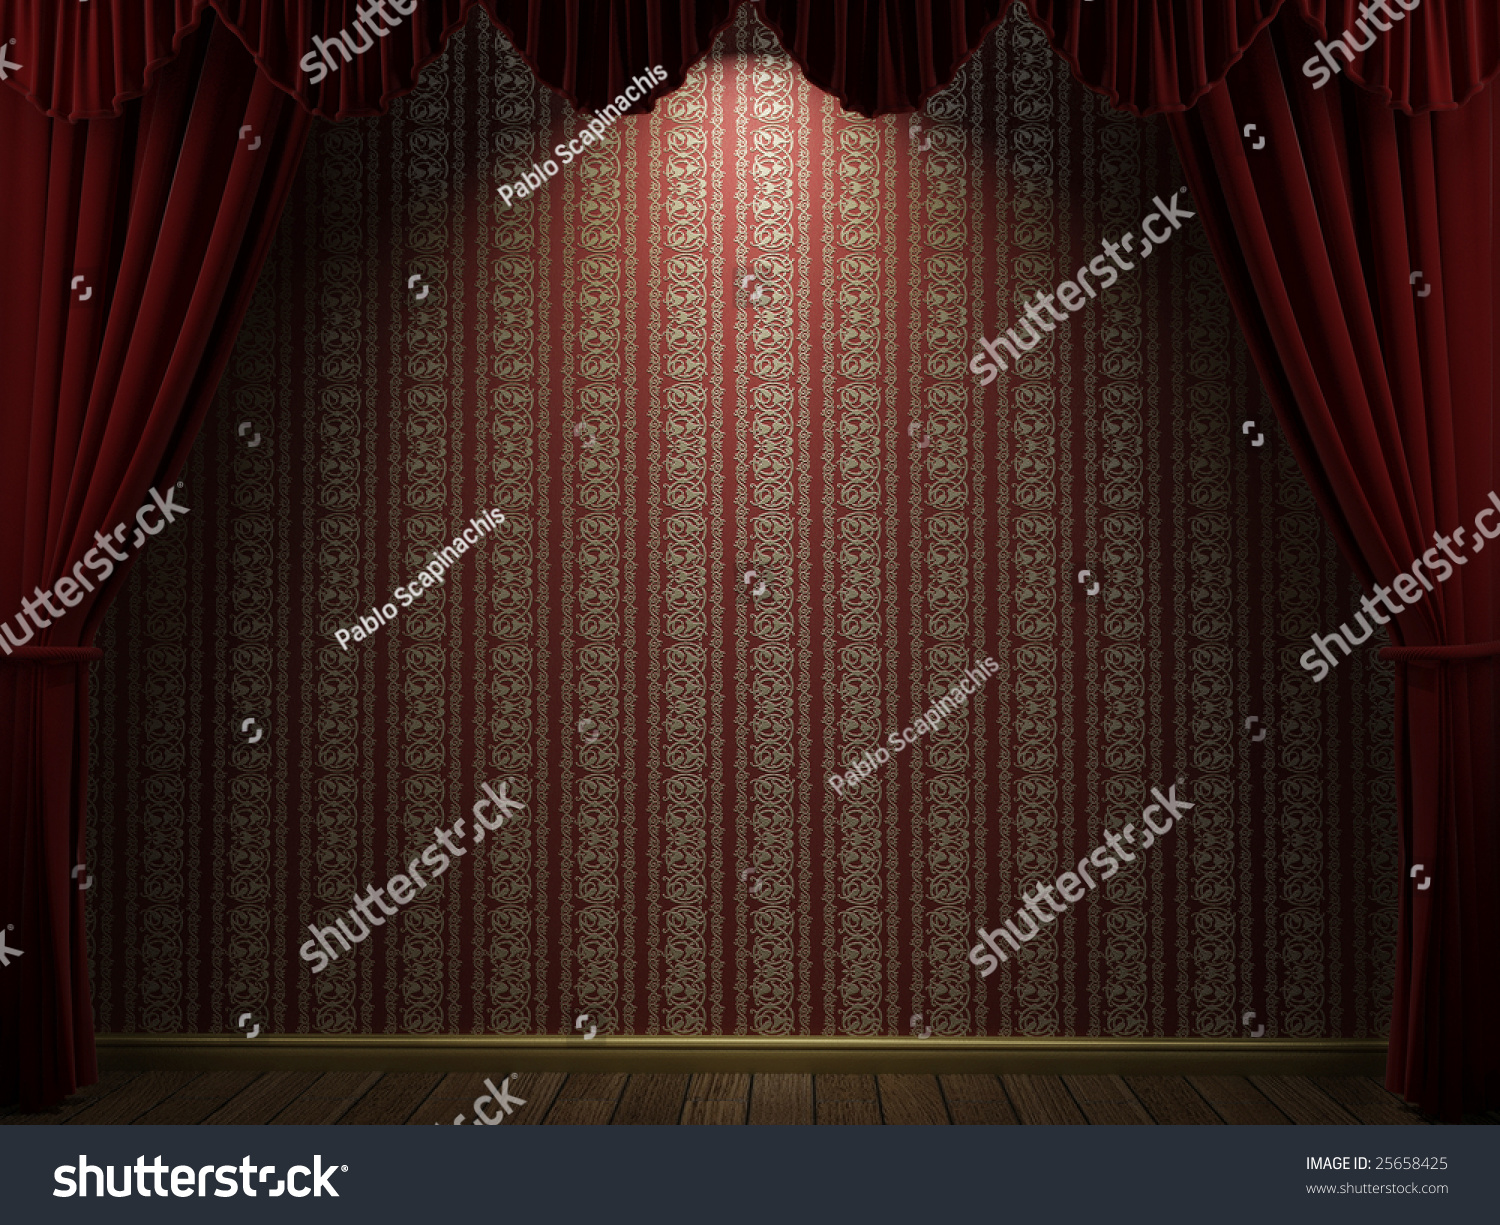 Open theater drapes or stage curtains royalty free stock image image -  Open Theatre Curtains Showing A Red And Golden Wallpaper Preview Save To A Lightbox